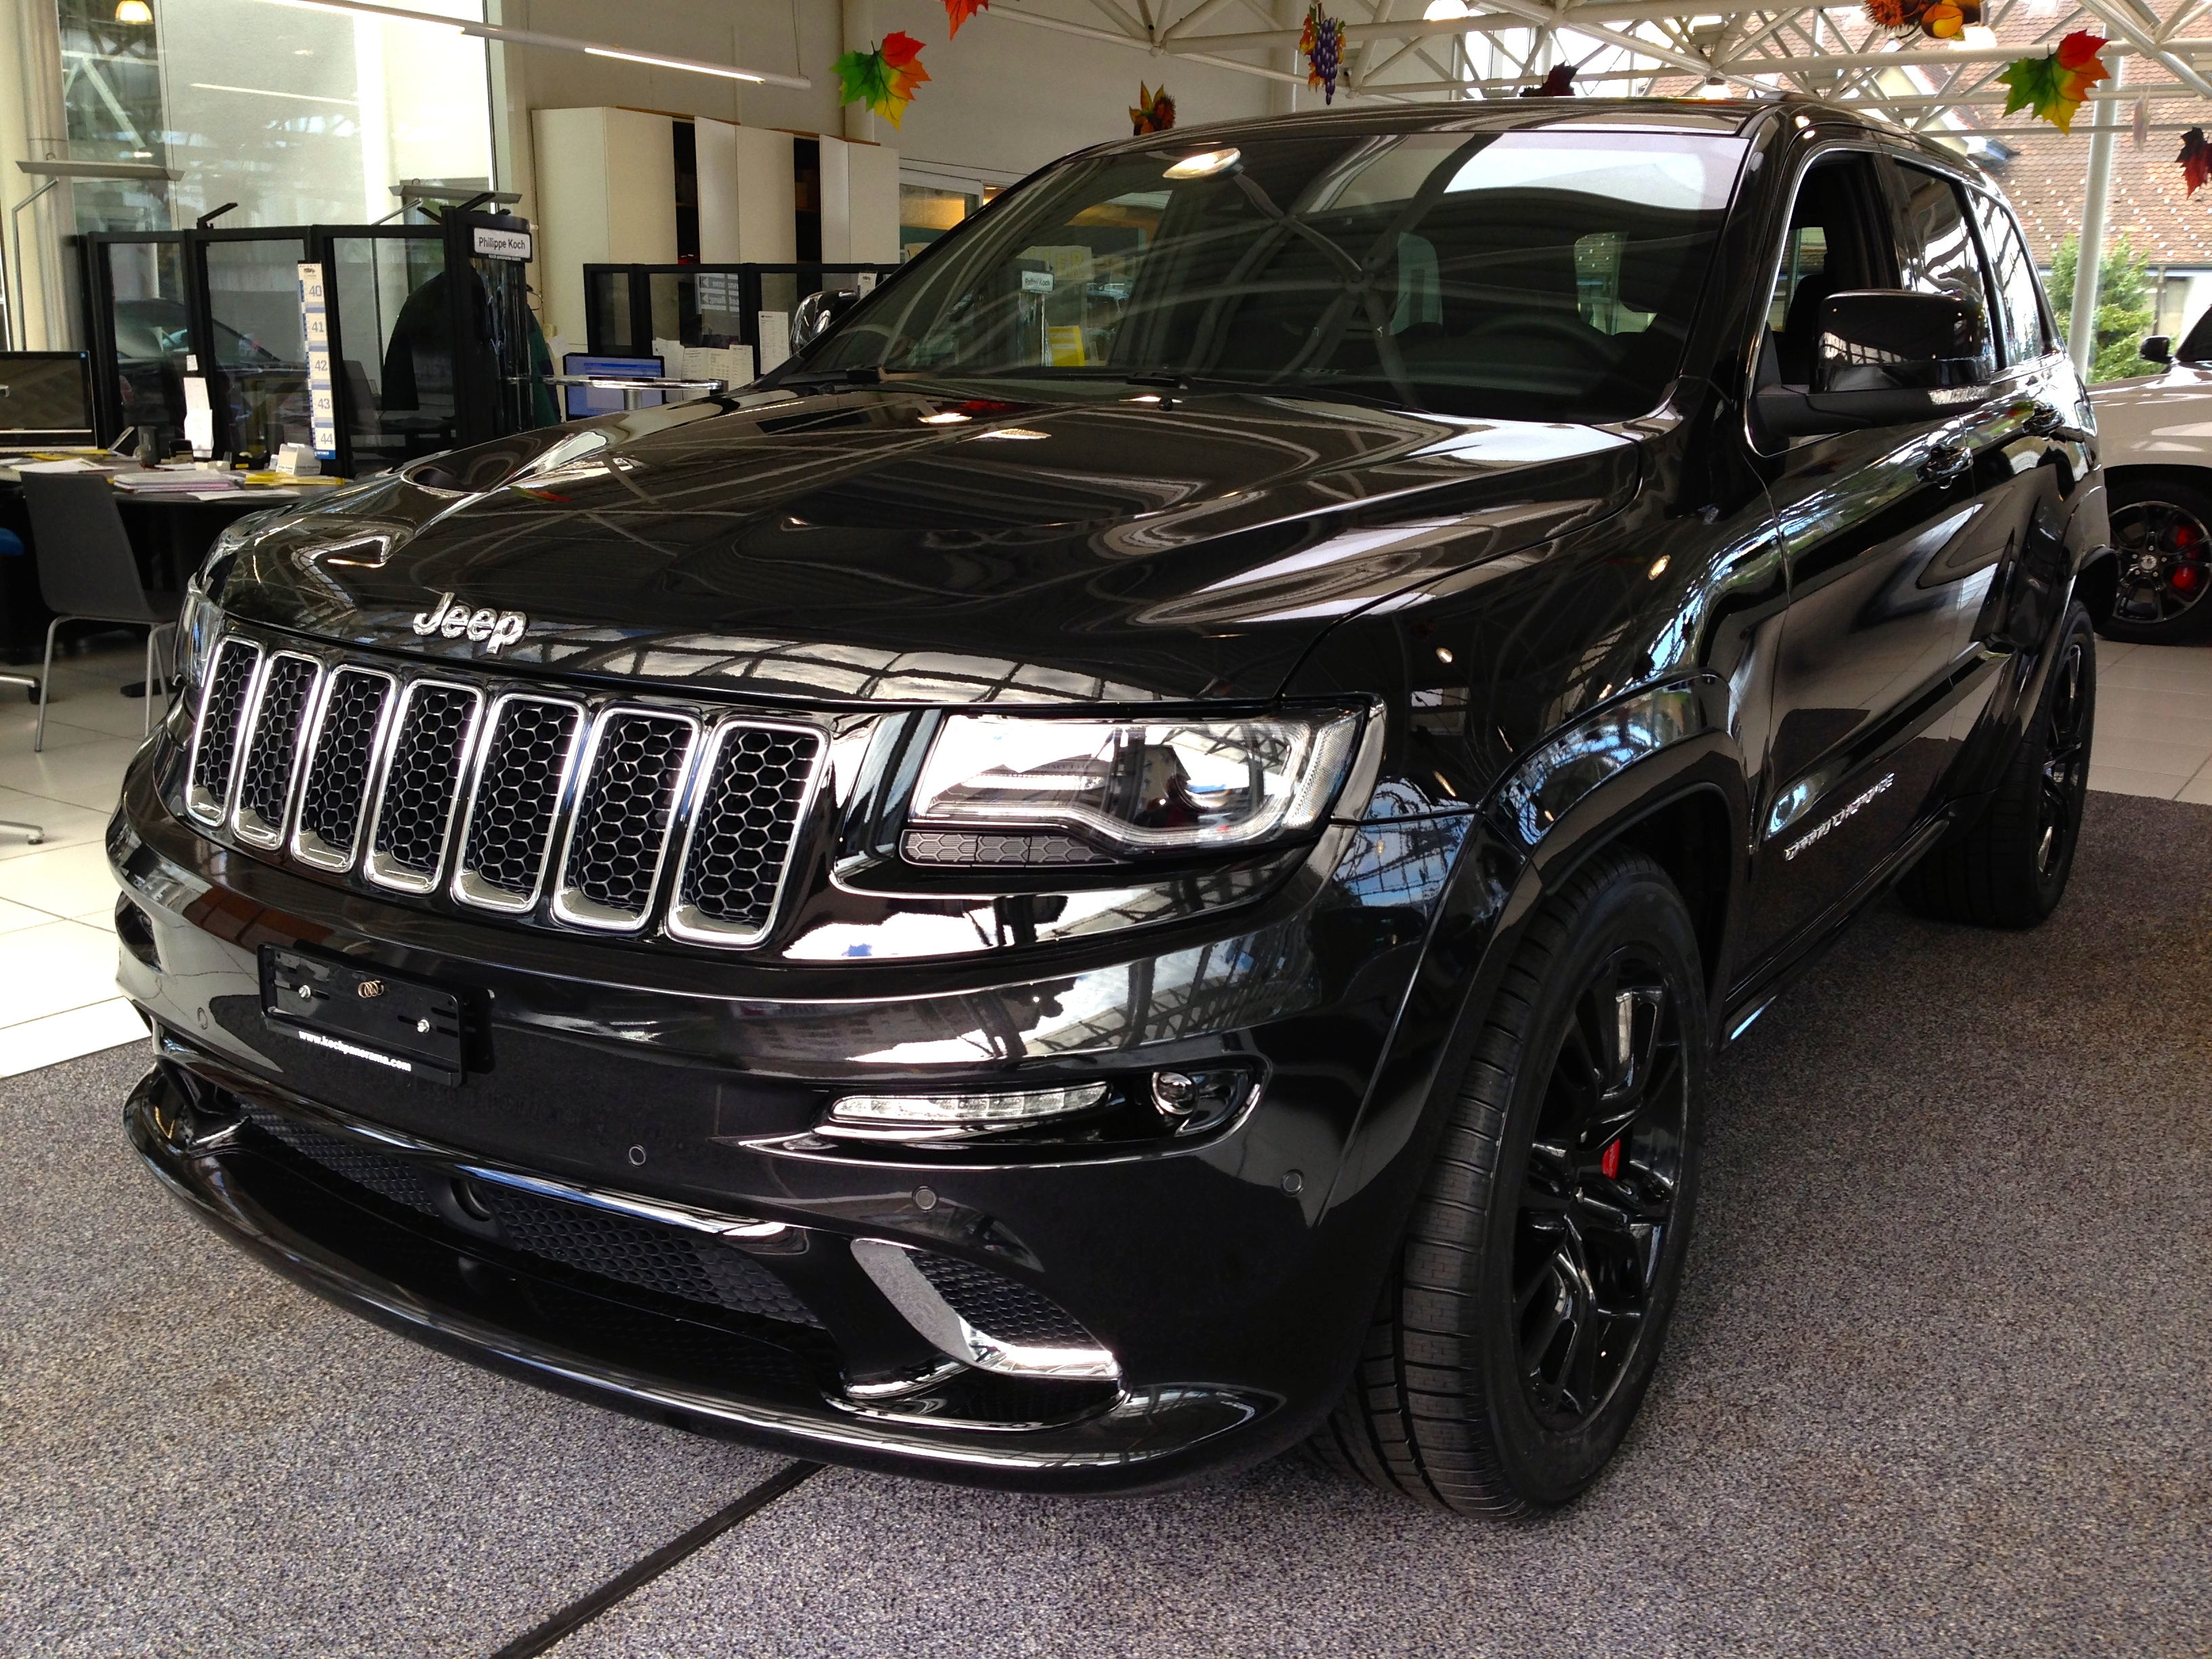 jeep adams grand forums richtone write hdr cherokee trailhawk topic detailing ups